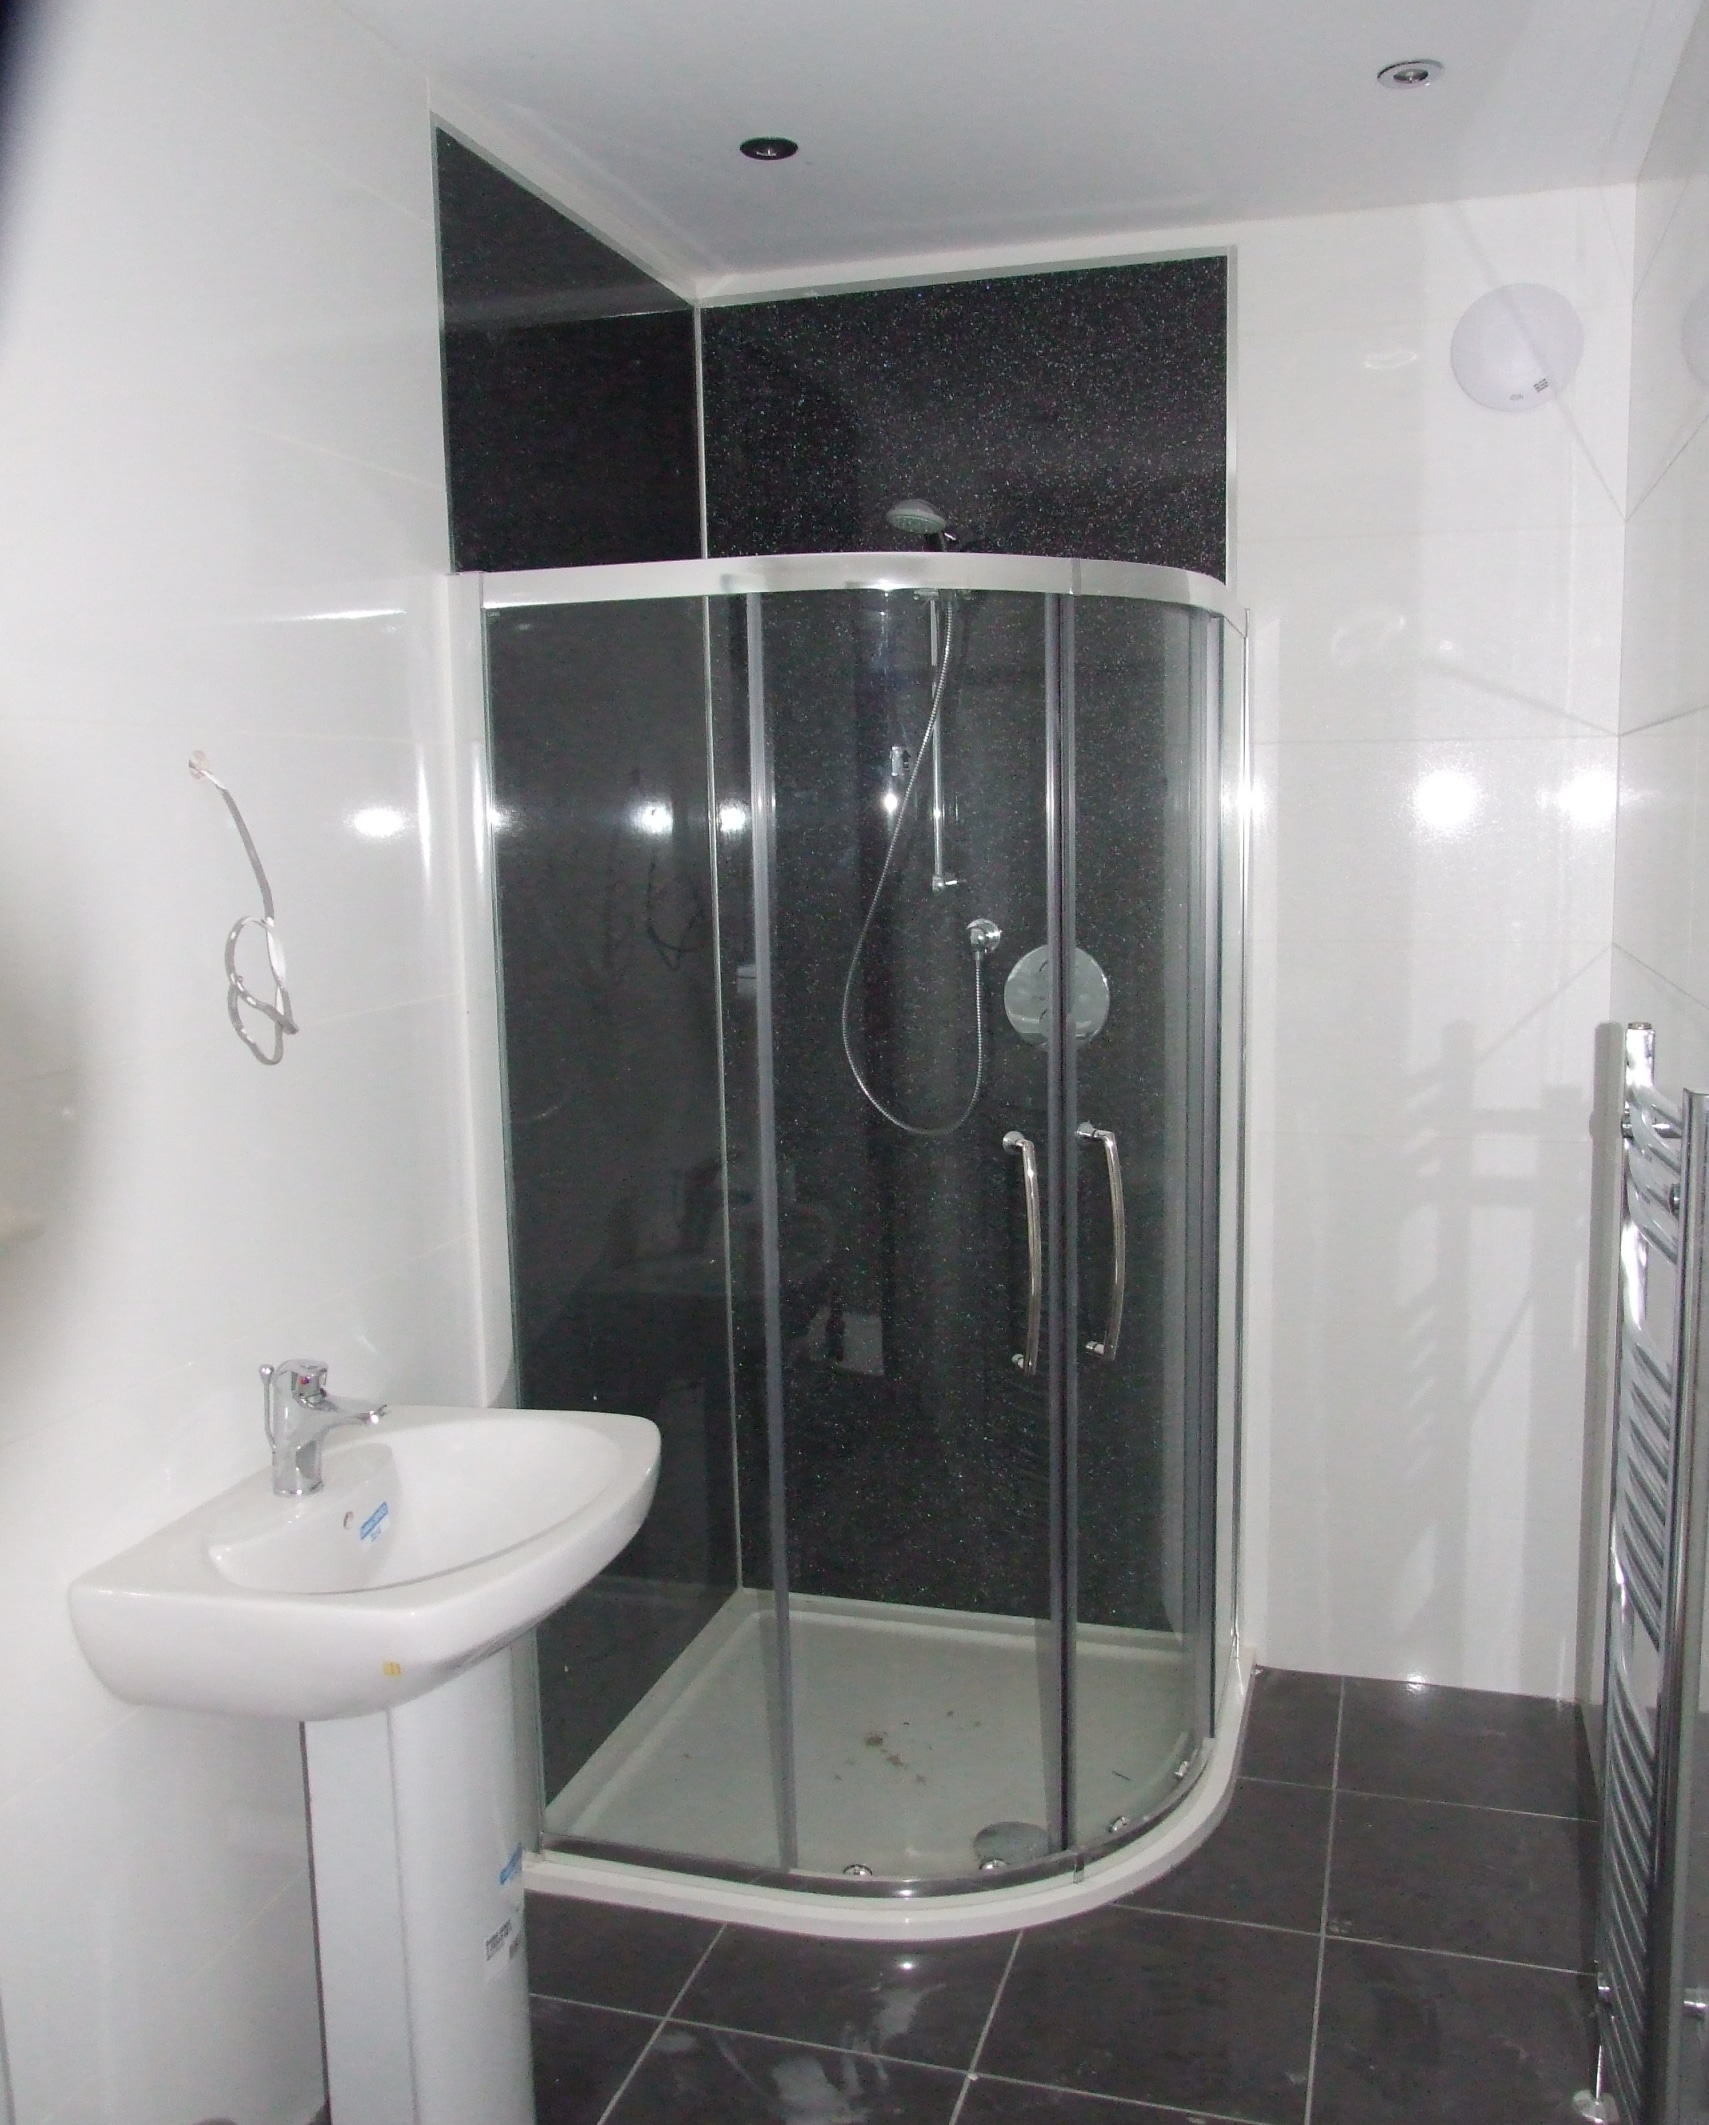 Didsbury Shower Room Transforming Homes For Over 30